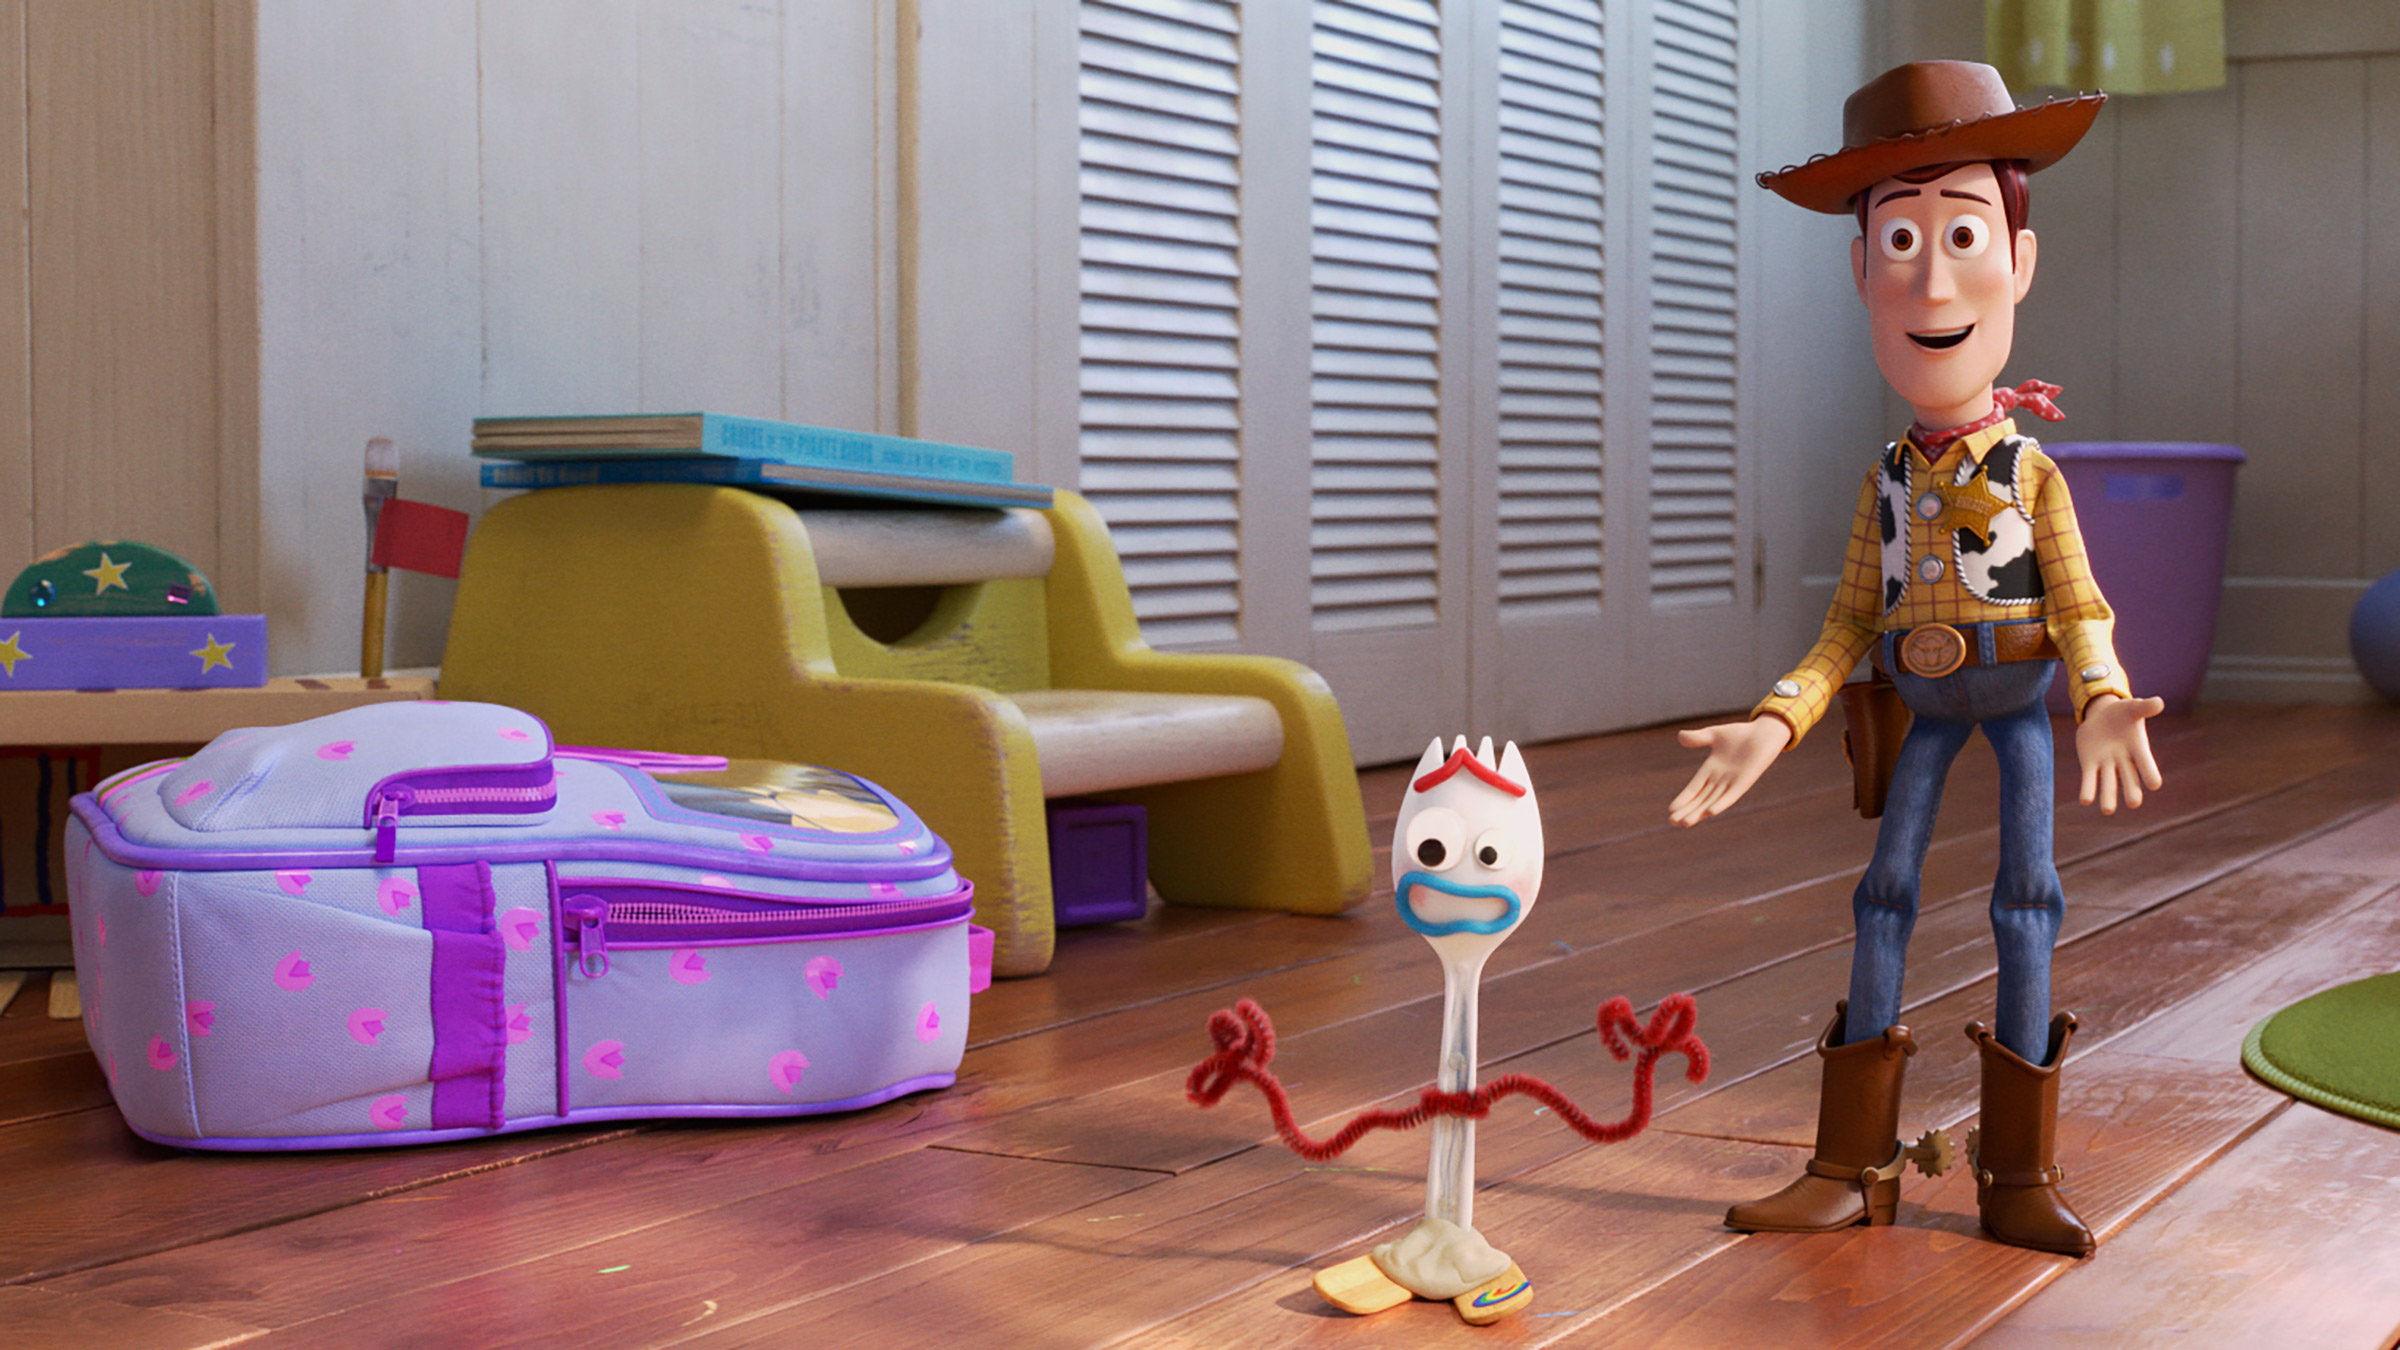 In 'Toy Story 4,' Woody (Tom Hanks) has got a friend—or something—in Forky (Tony Hale).